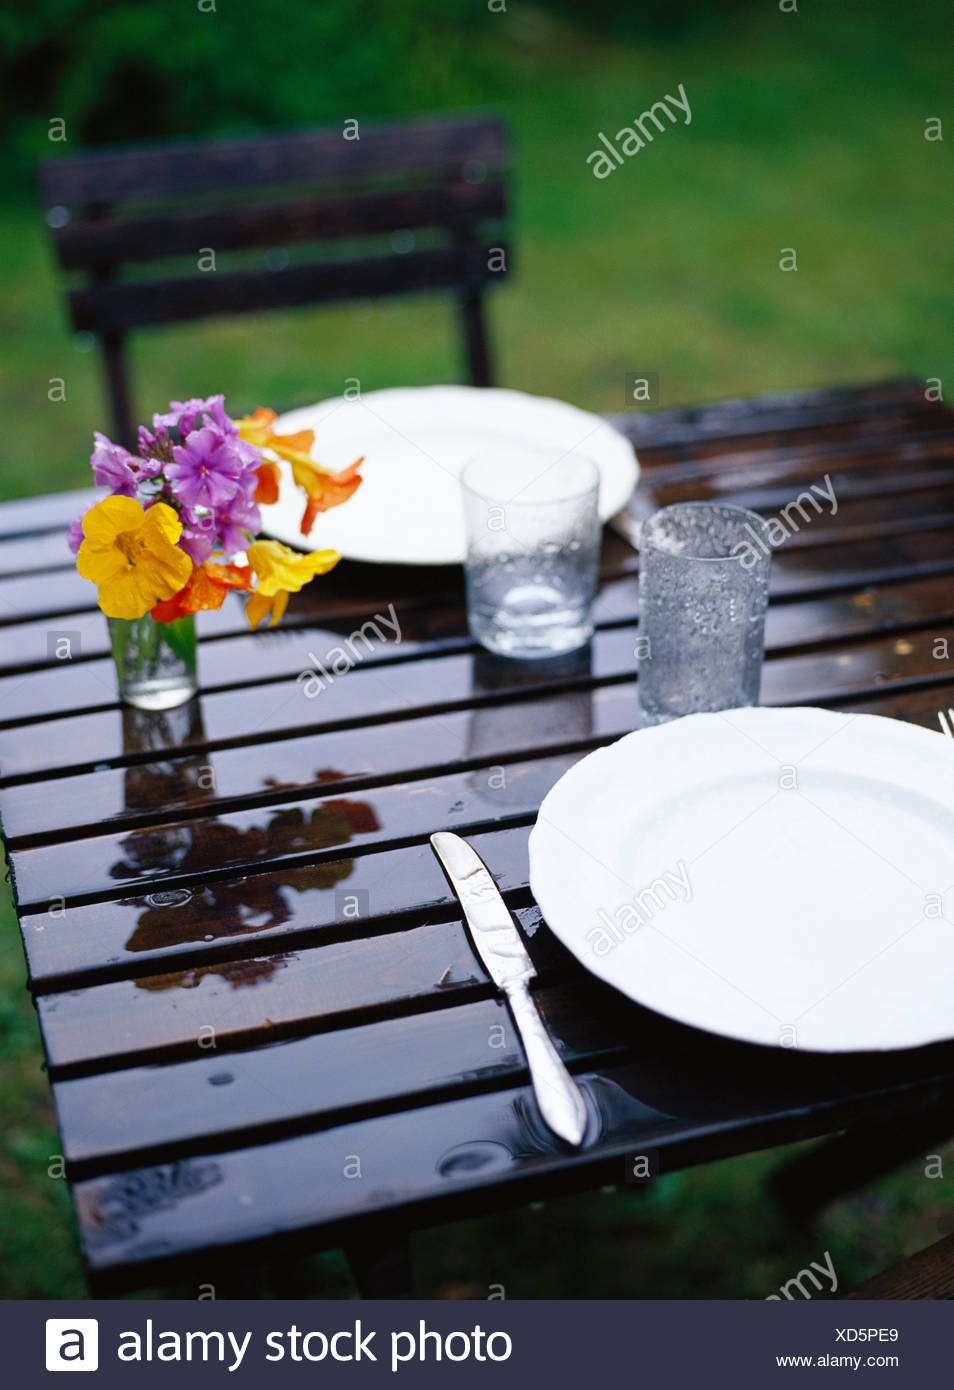 Raining on a table ready laid, Sweden. - Stock Image